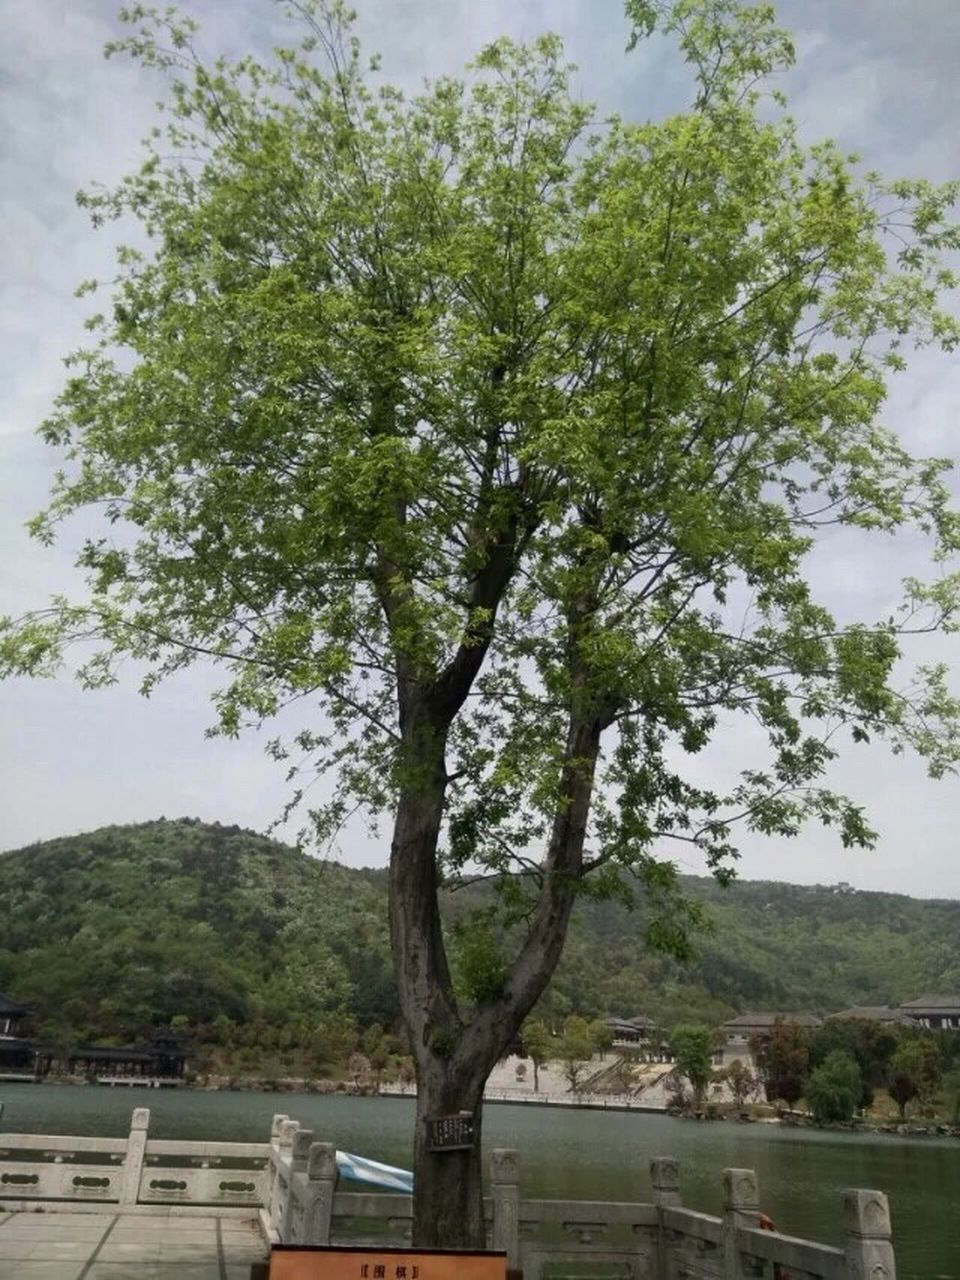 tree, growth, nature, no people, day, sky, scenics, outdoors, beauty in nature, branch